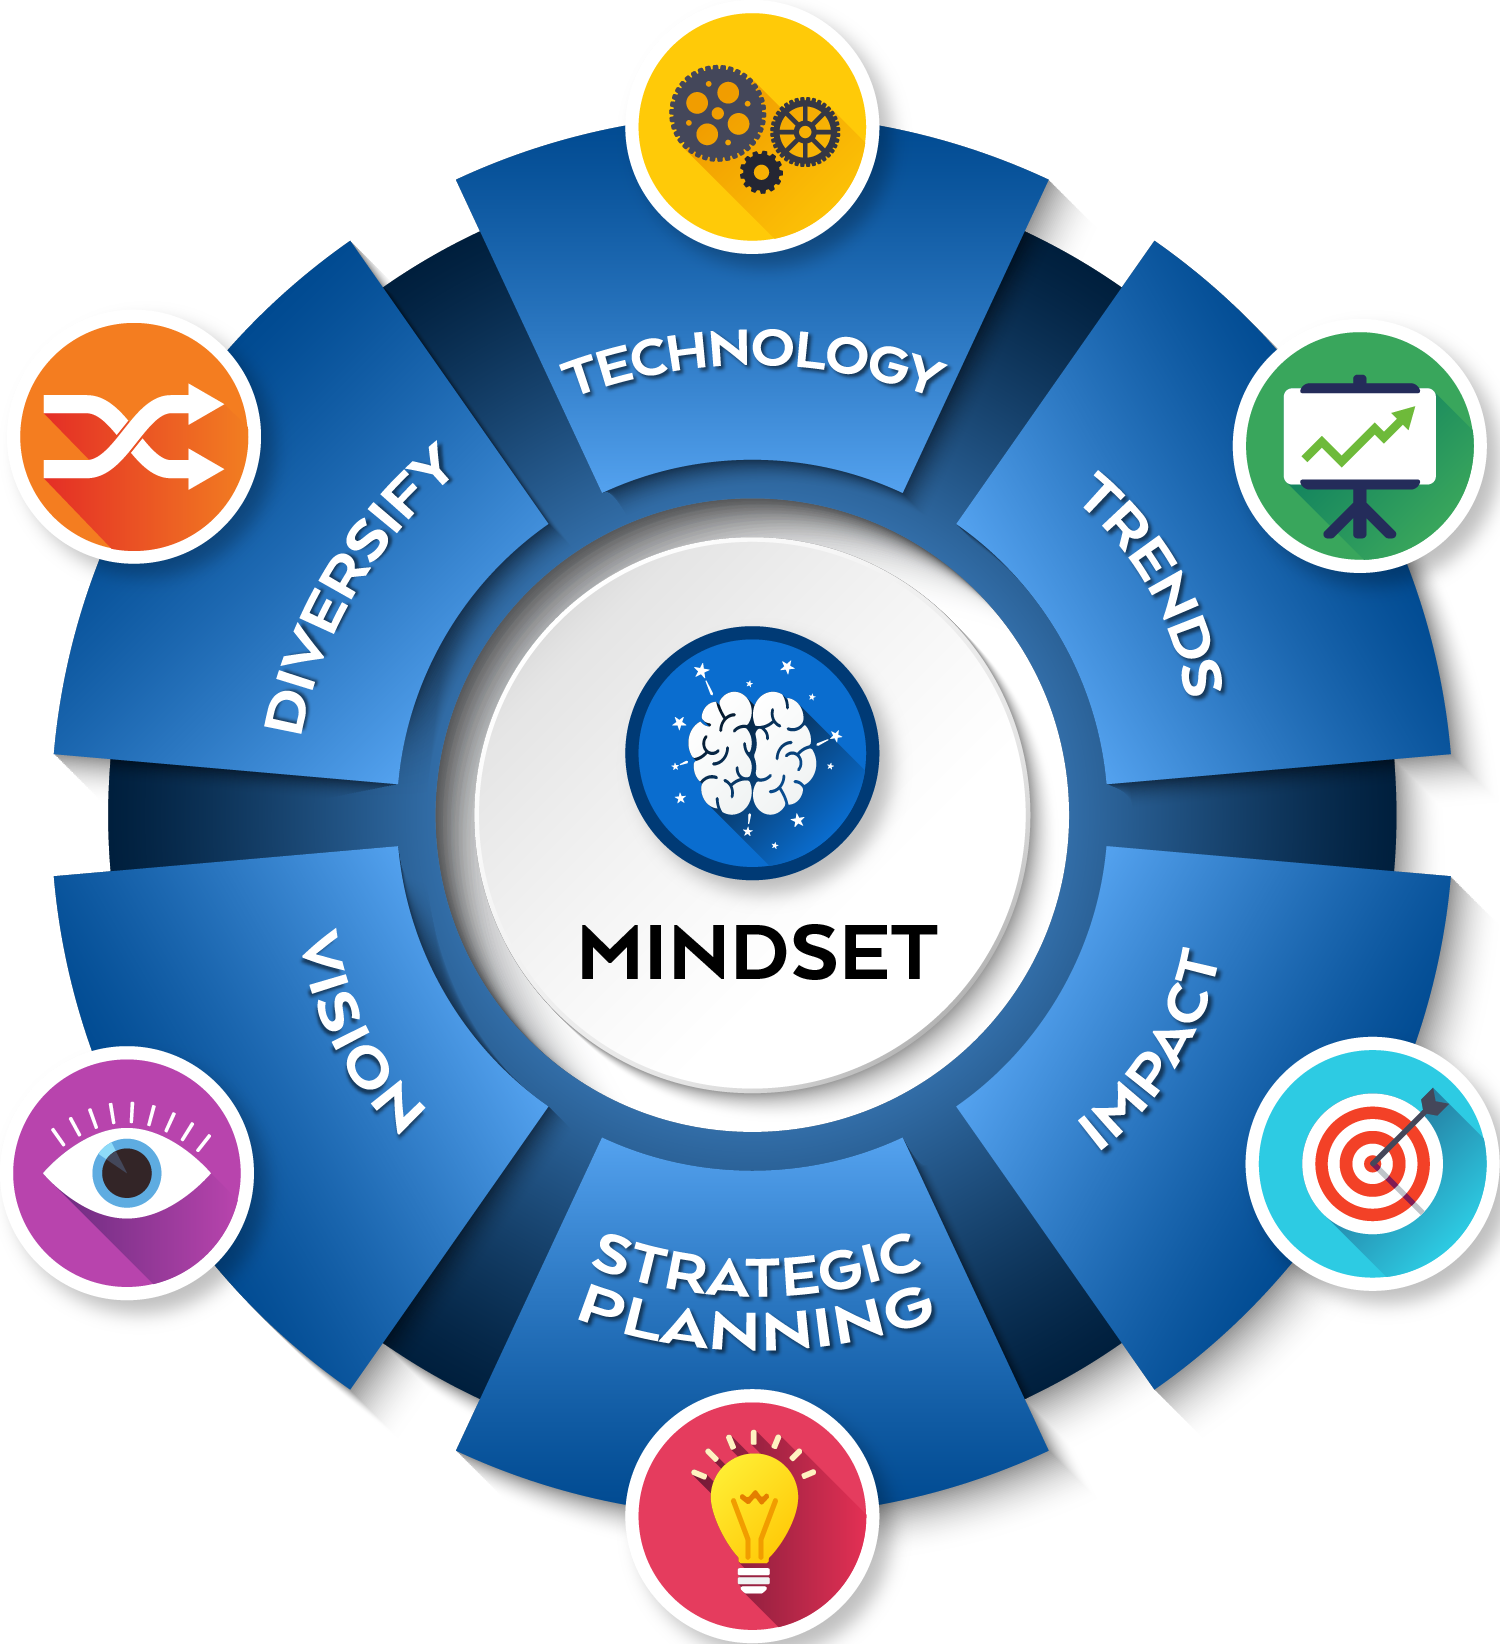 Growth Mindset is the cornerstone to help your business thrive and face the challenges of the current and future business climate.